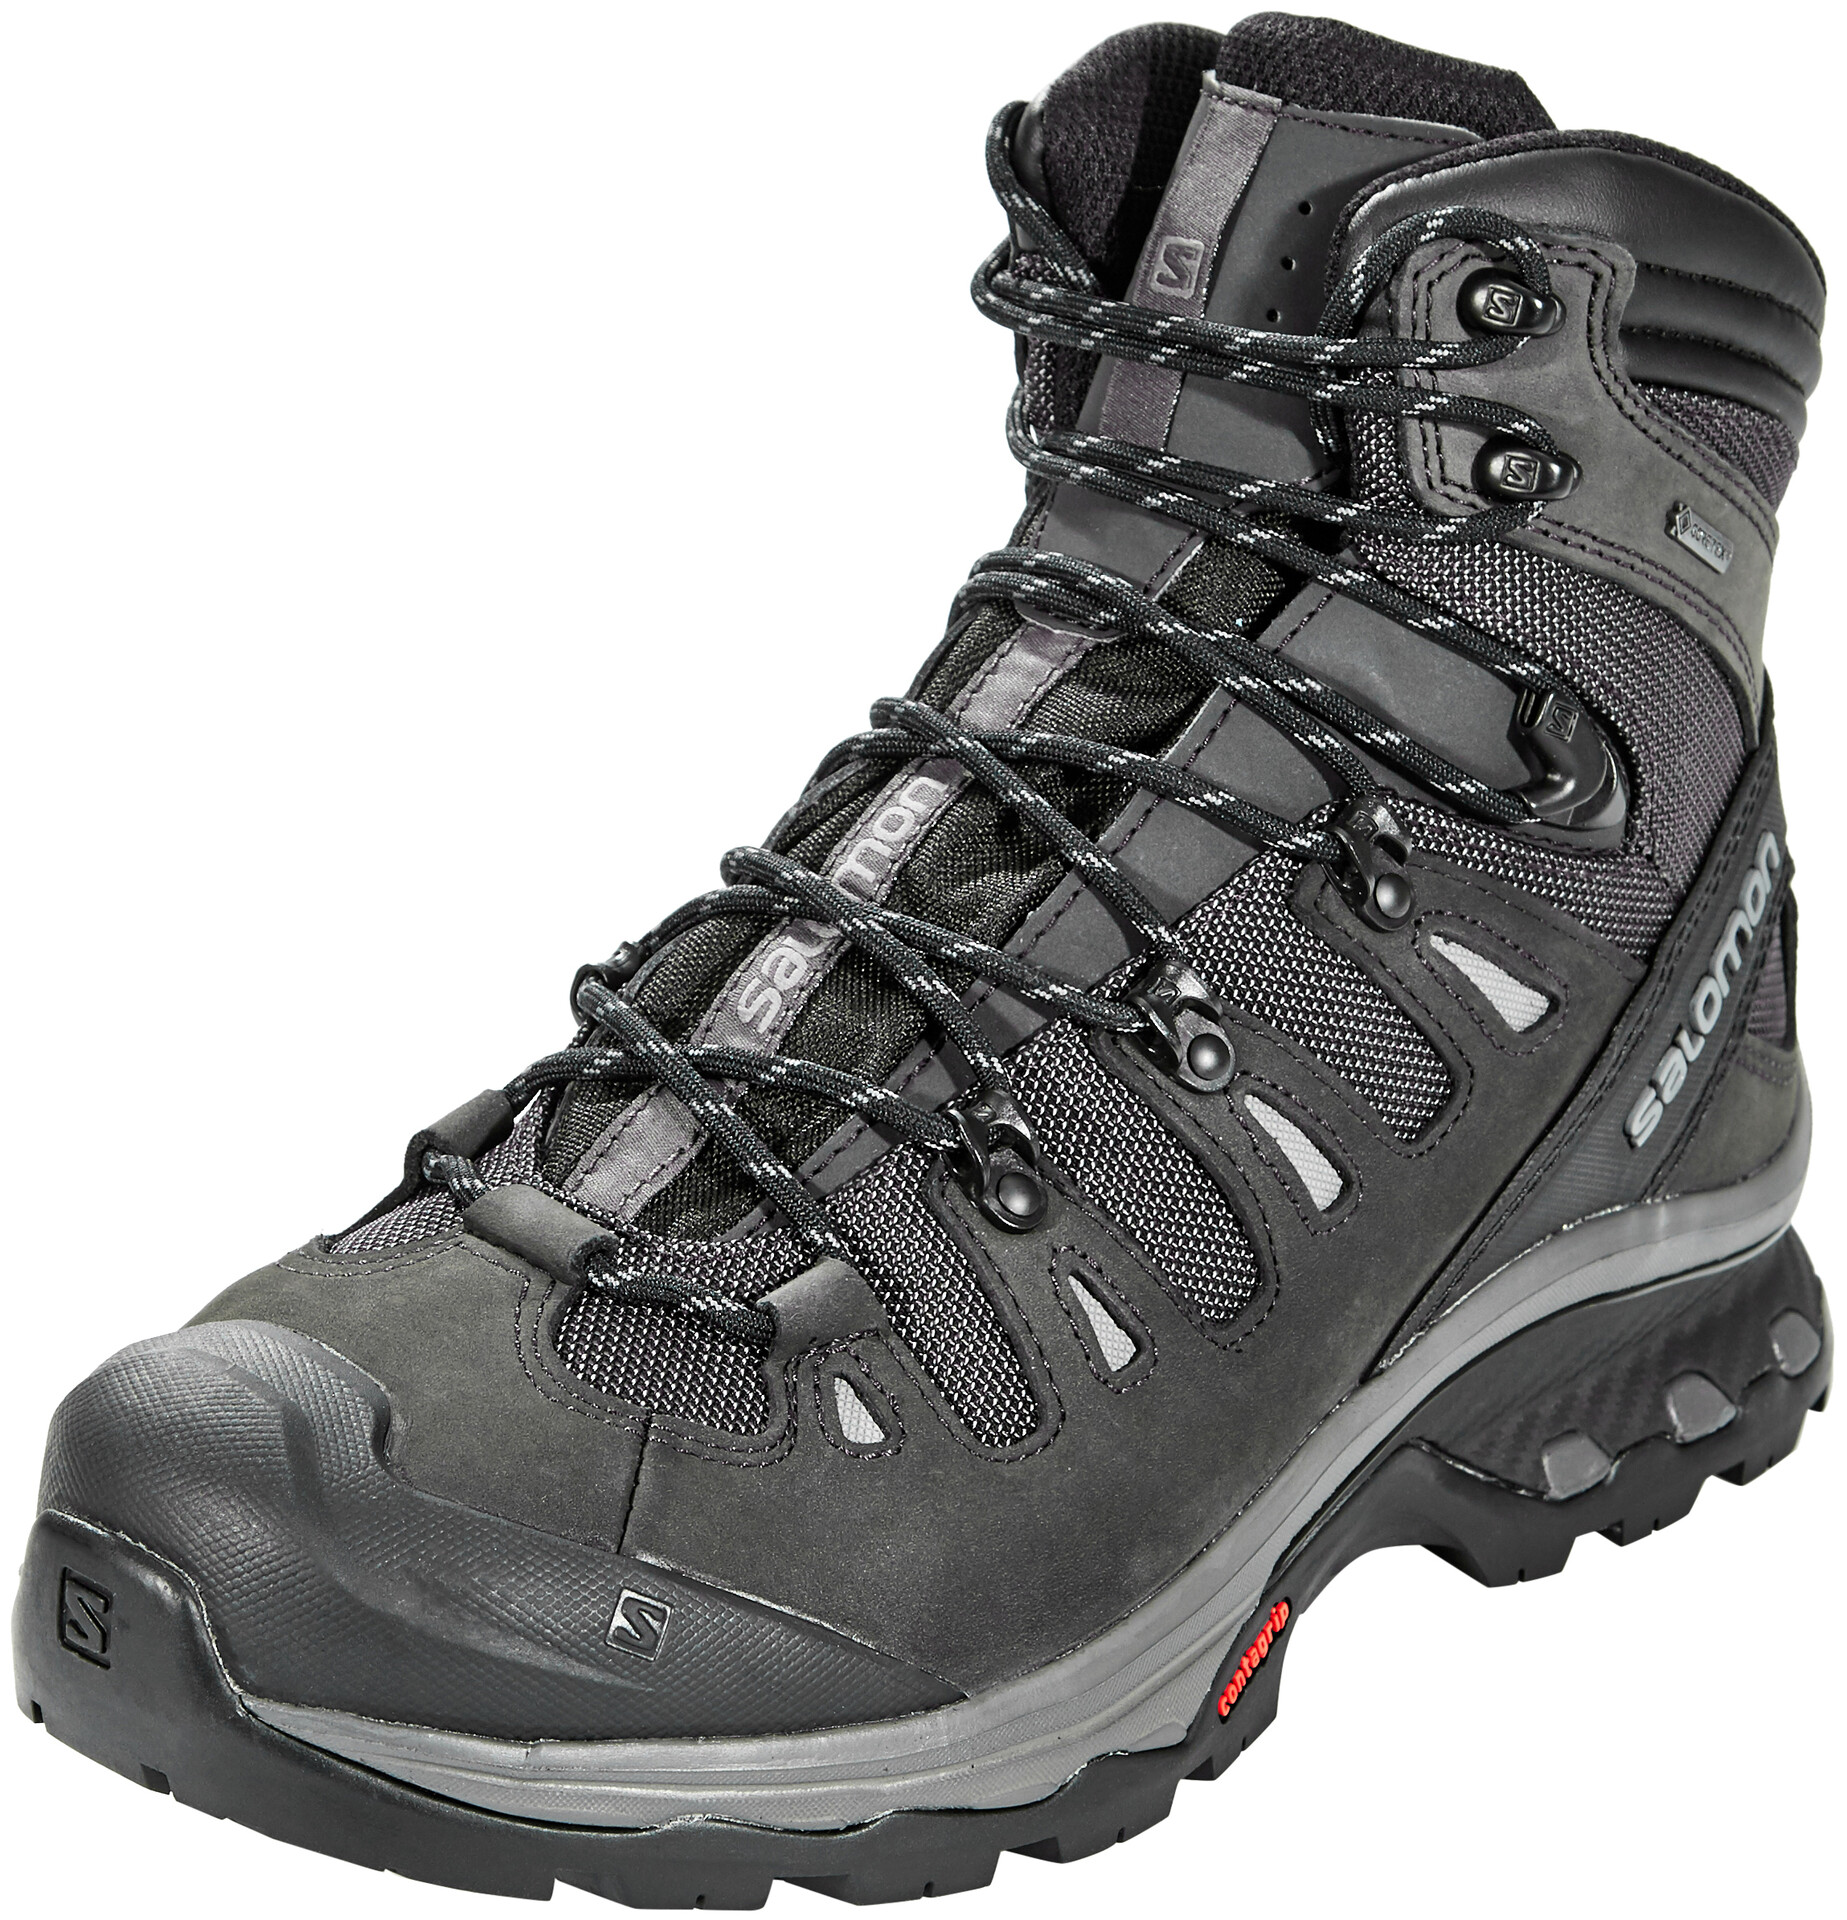 Waterproof Salomon Quest 4D 2 GTX Hiking Boots For Men